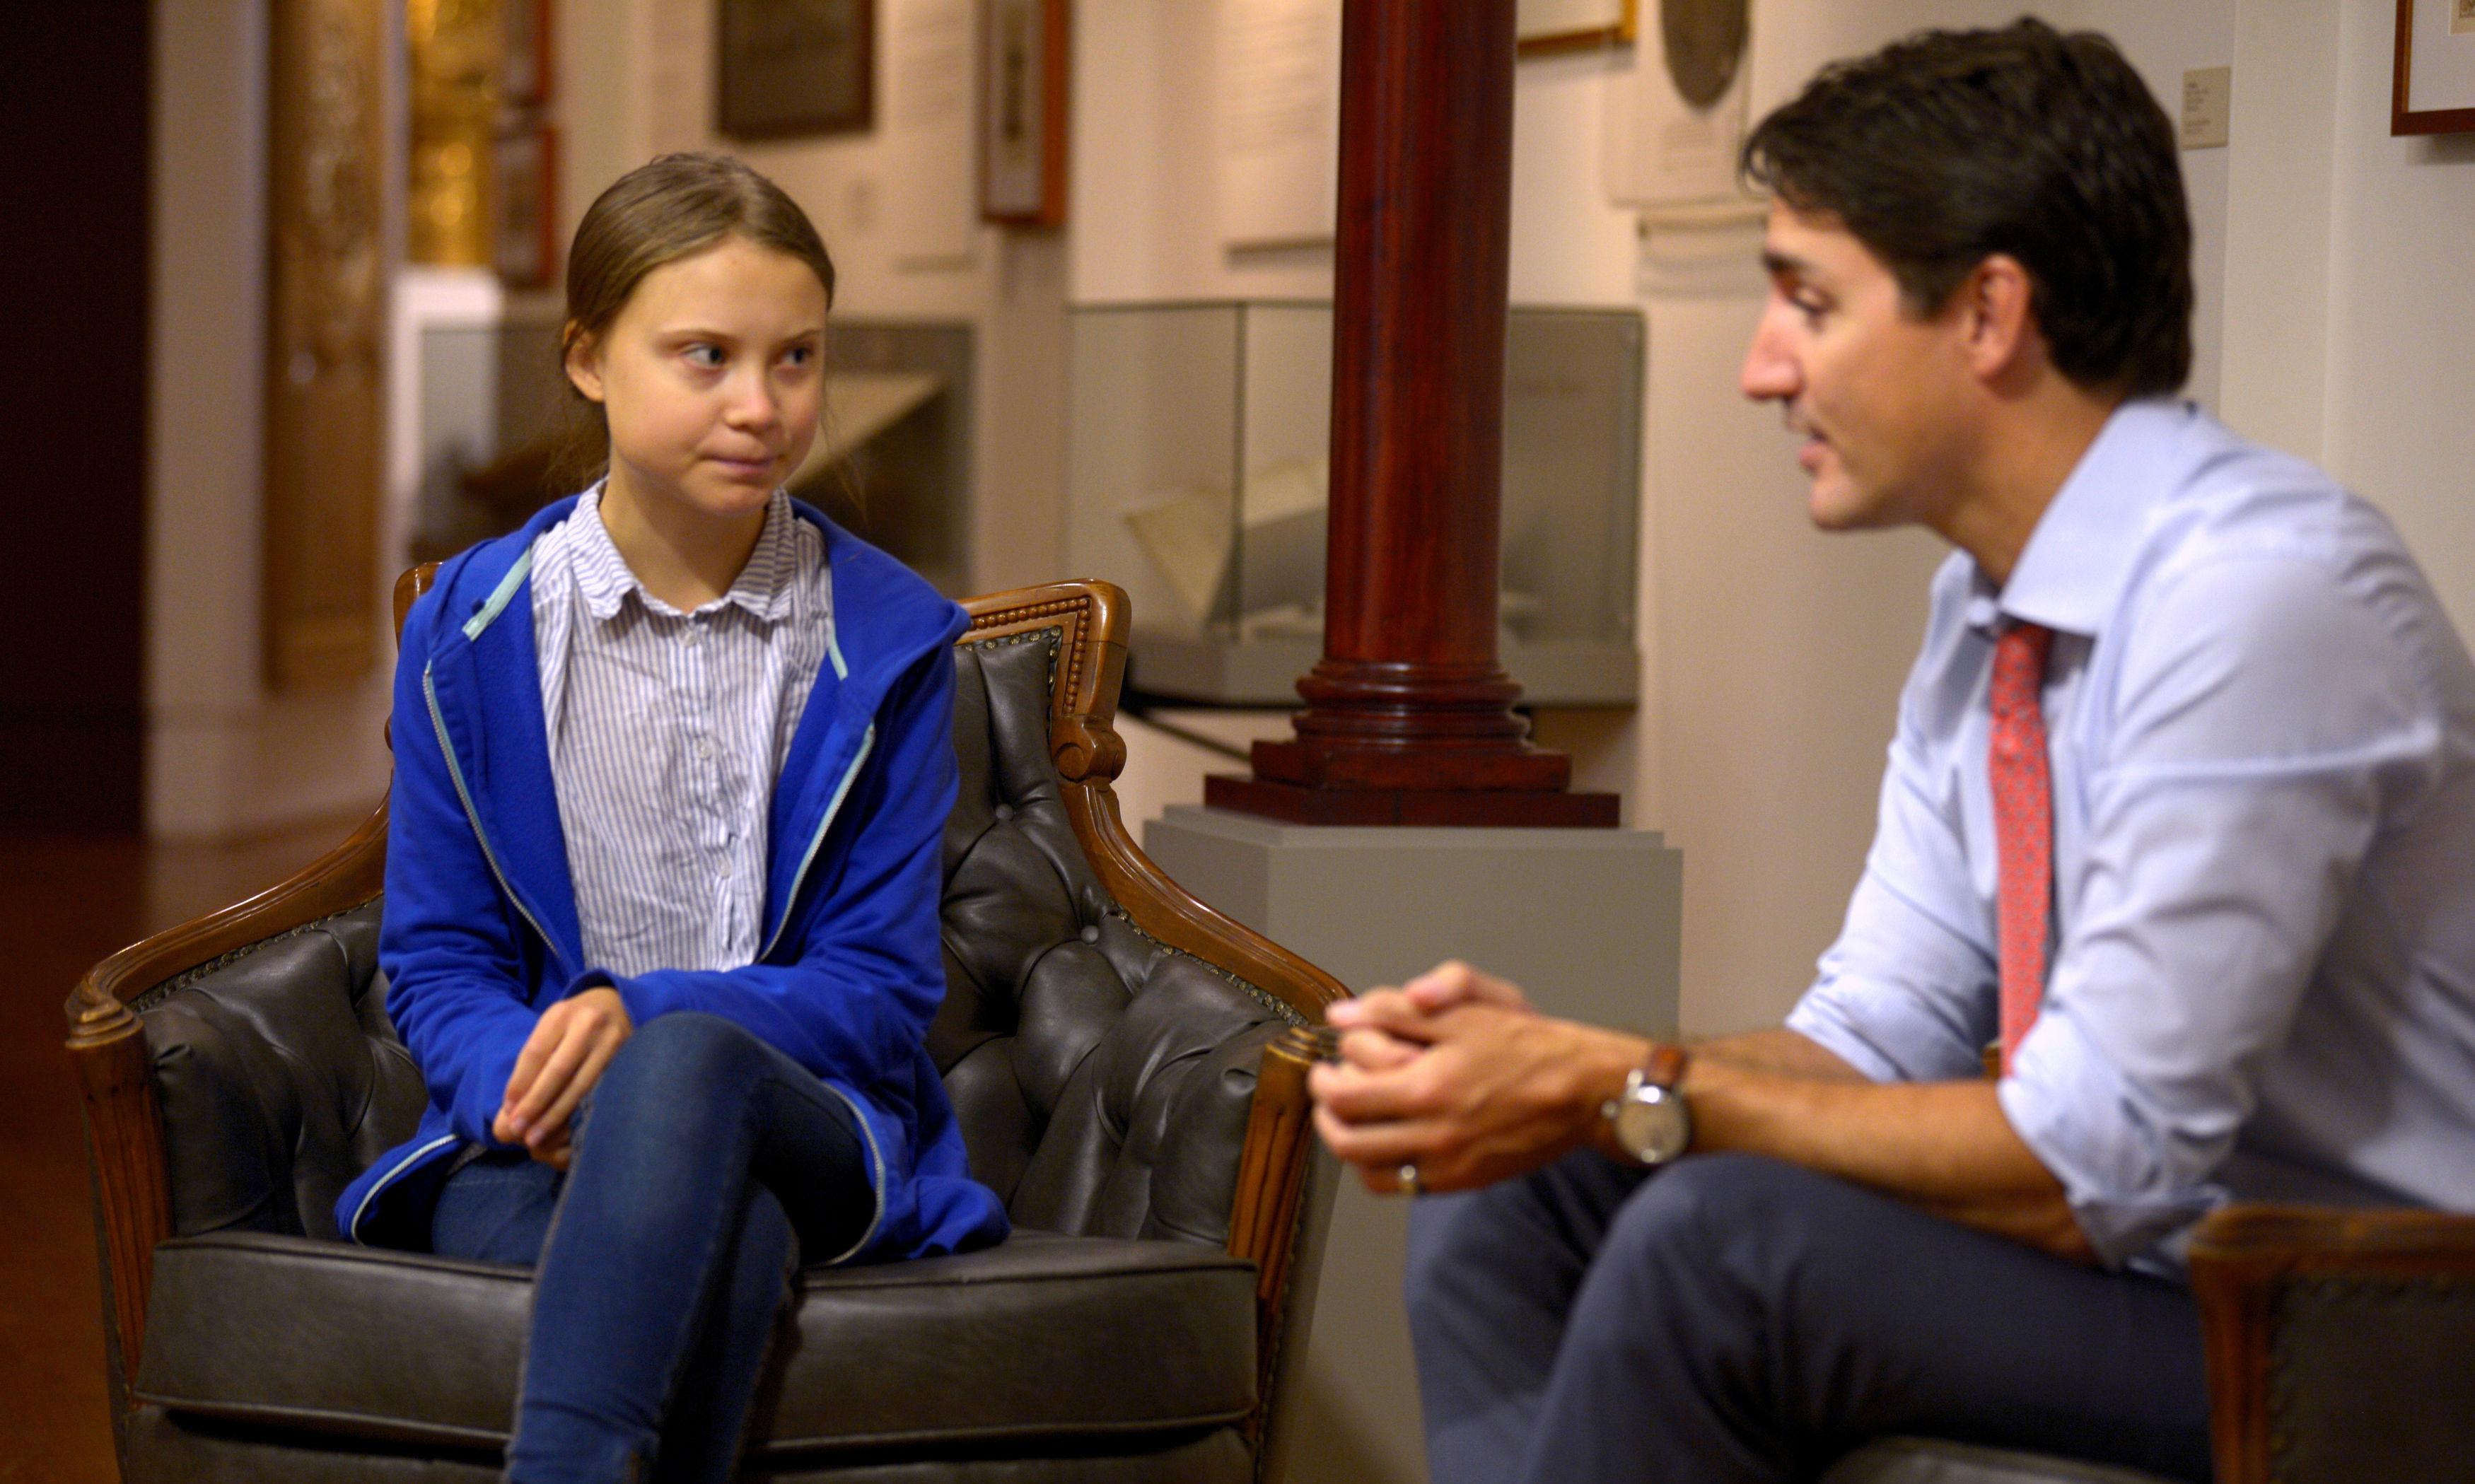 Greta Thunberg meets Justin Trudeau amid climate strikes: 'He is not doing enough'